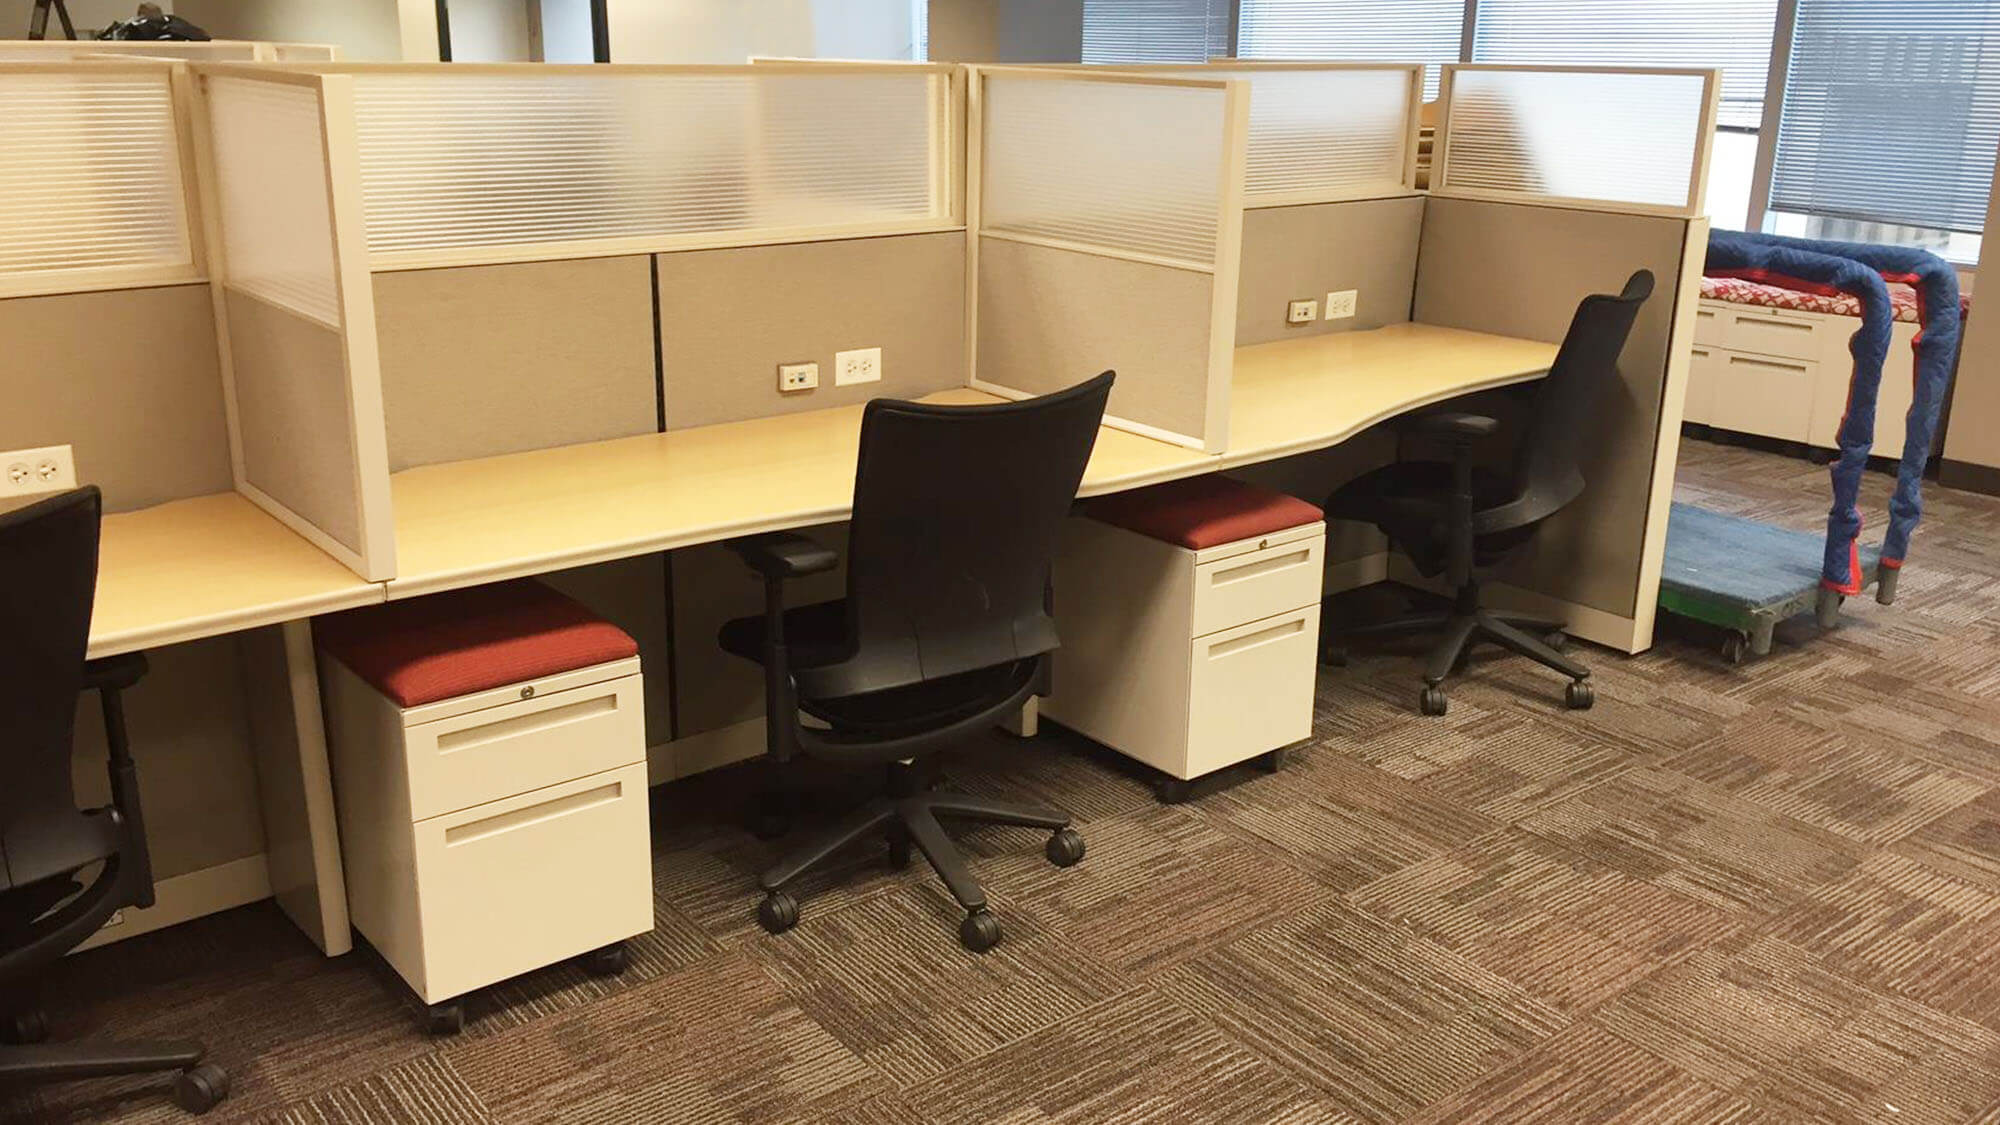 Office Furniture: Office Design, Furniture Installation In Chicago, IL